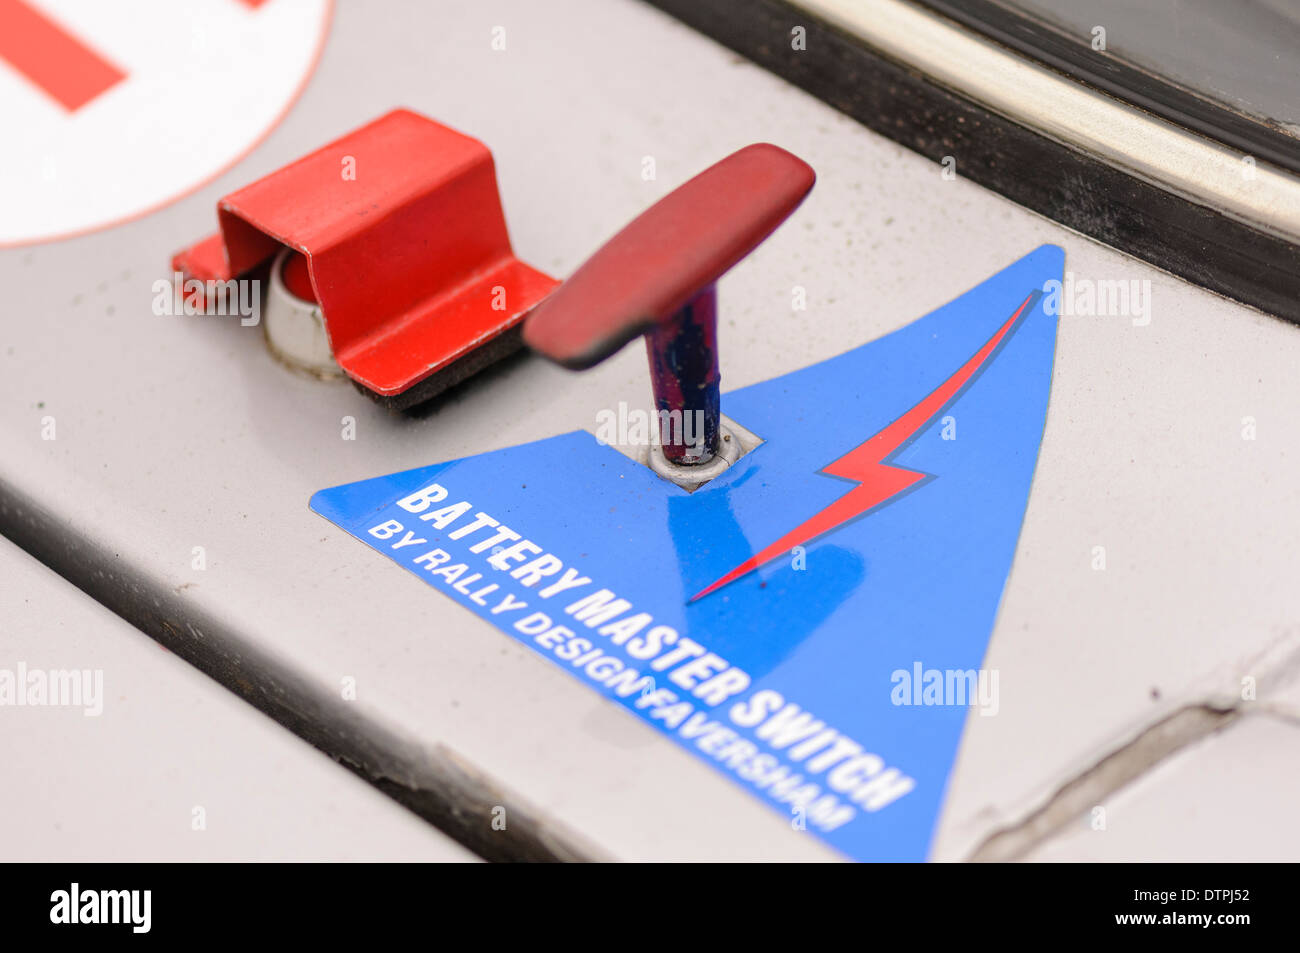 Emergency power cut-off switch and fire extinguisher switch on the outside of a rally car - Stock Image